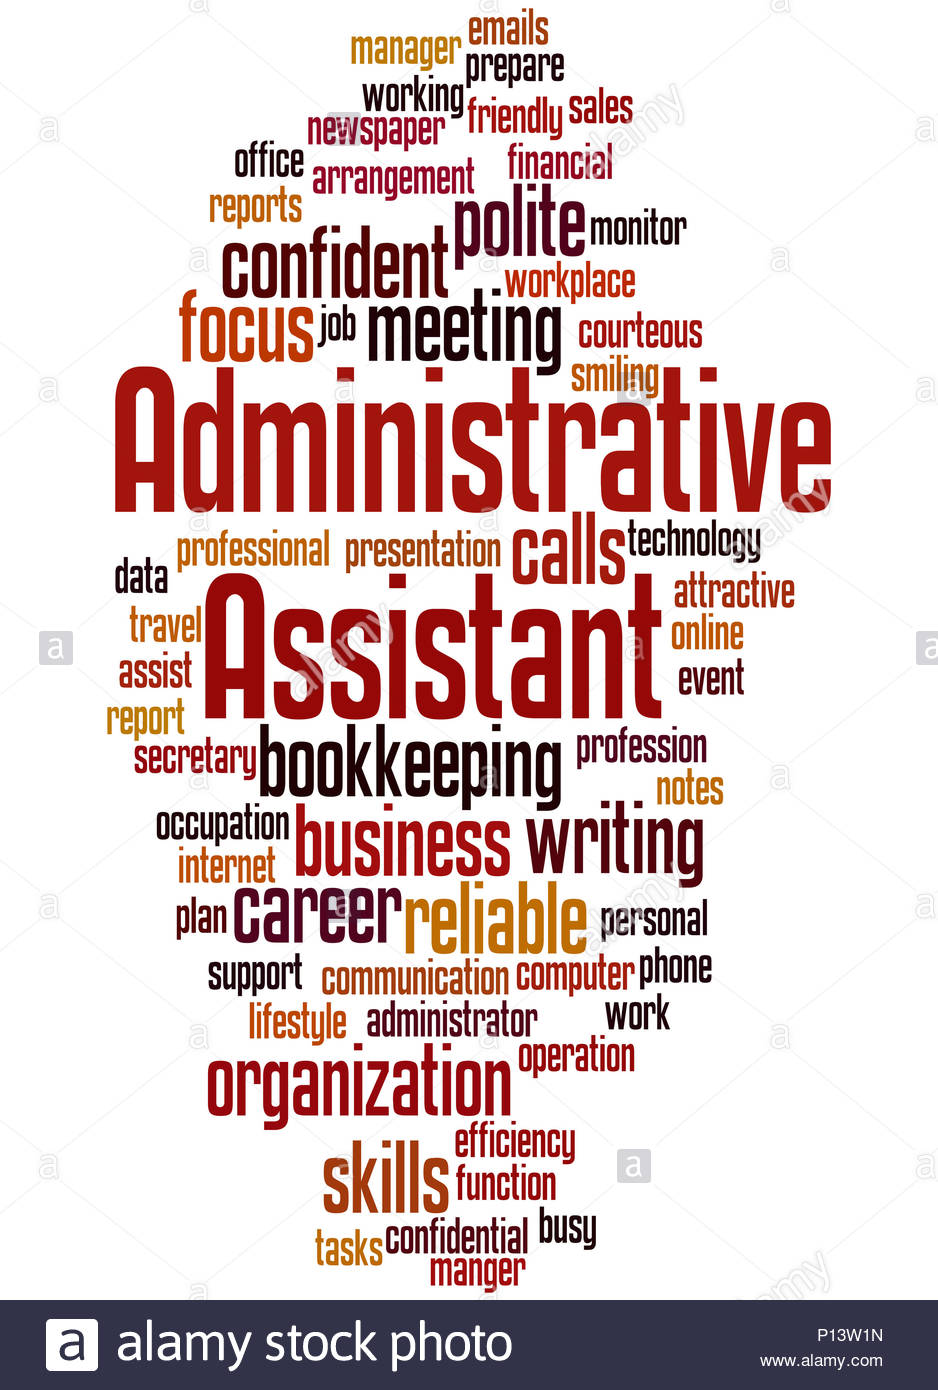 Administrative Assistant word cloud concept on white background 938x1390